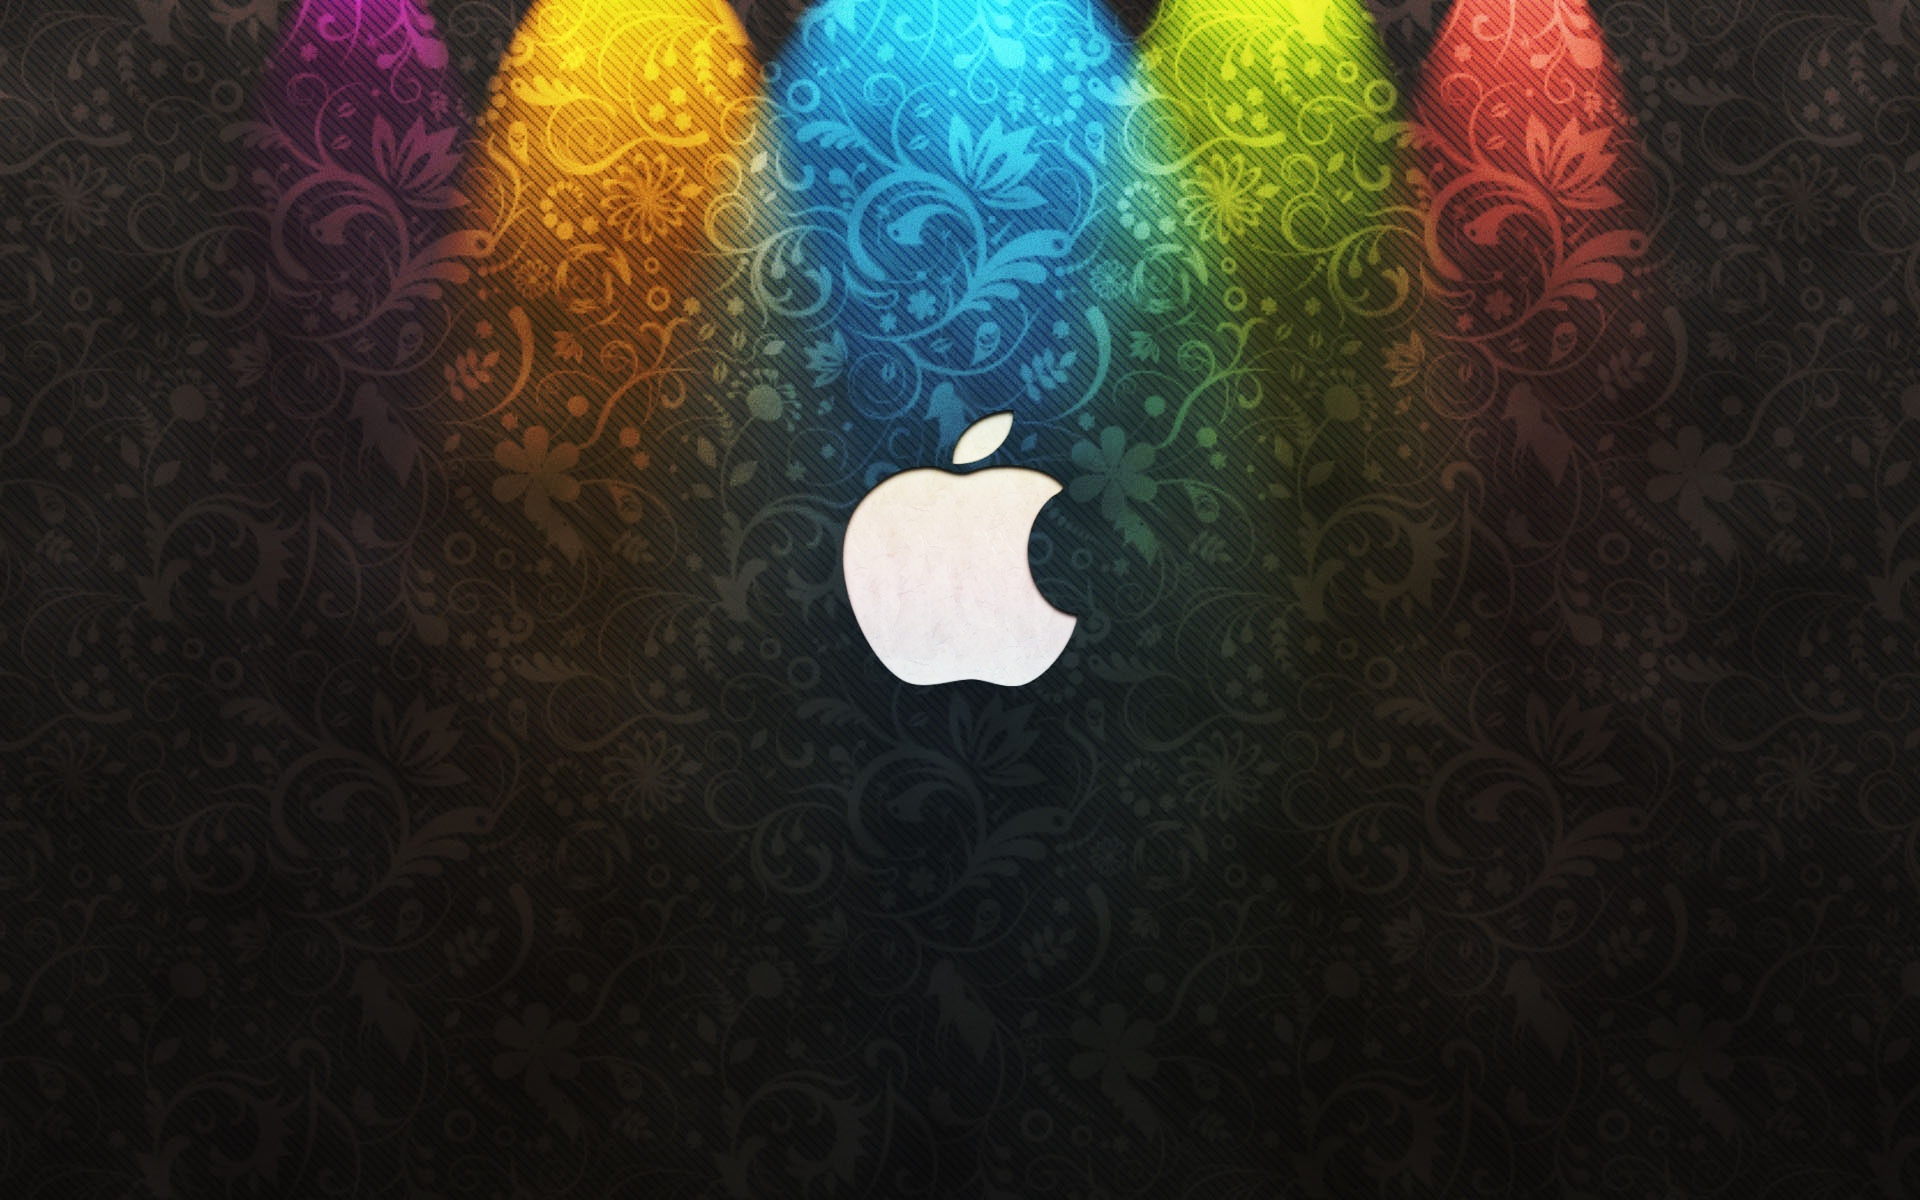 cool apple logo wallpaper #2